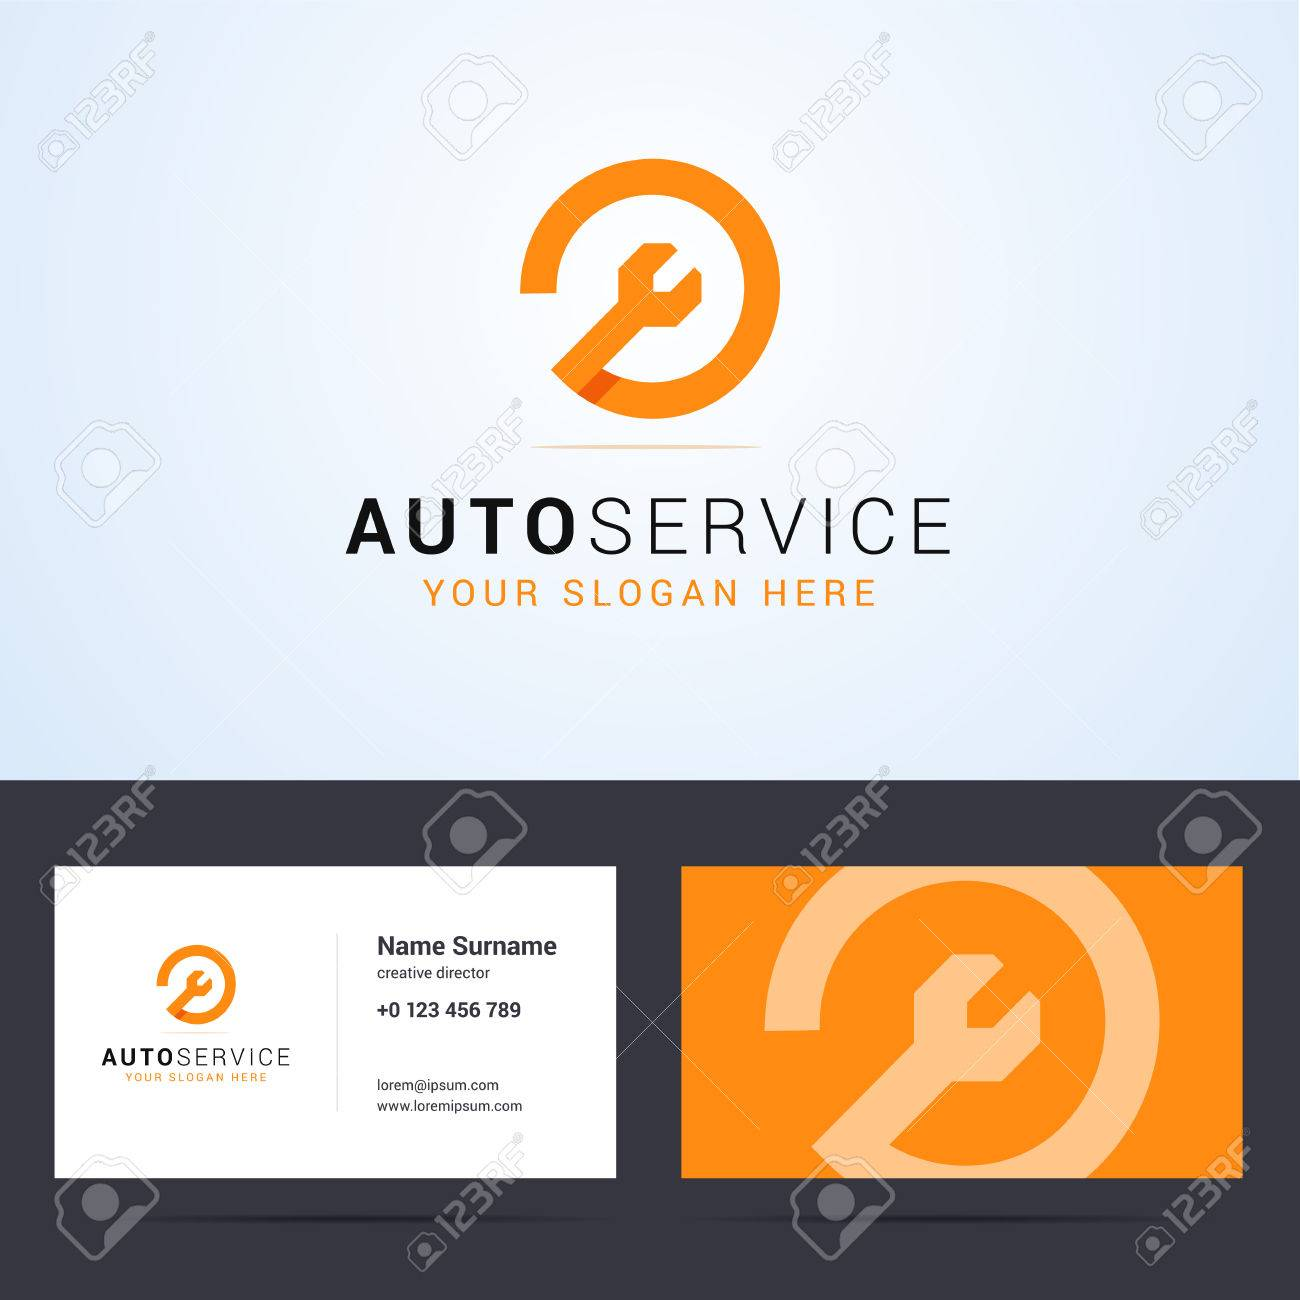 Logo and business card template layout for auto service repair logo and business card template layout for auto service repair service system administrator reheart Image collections